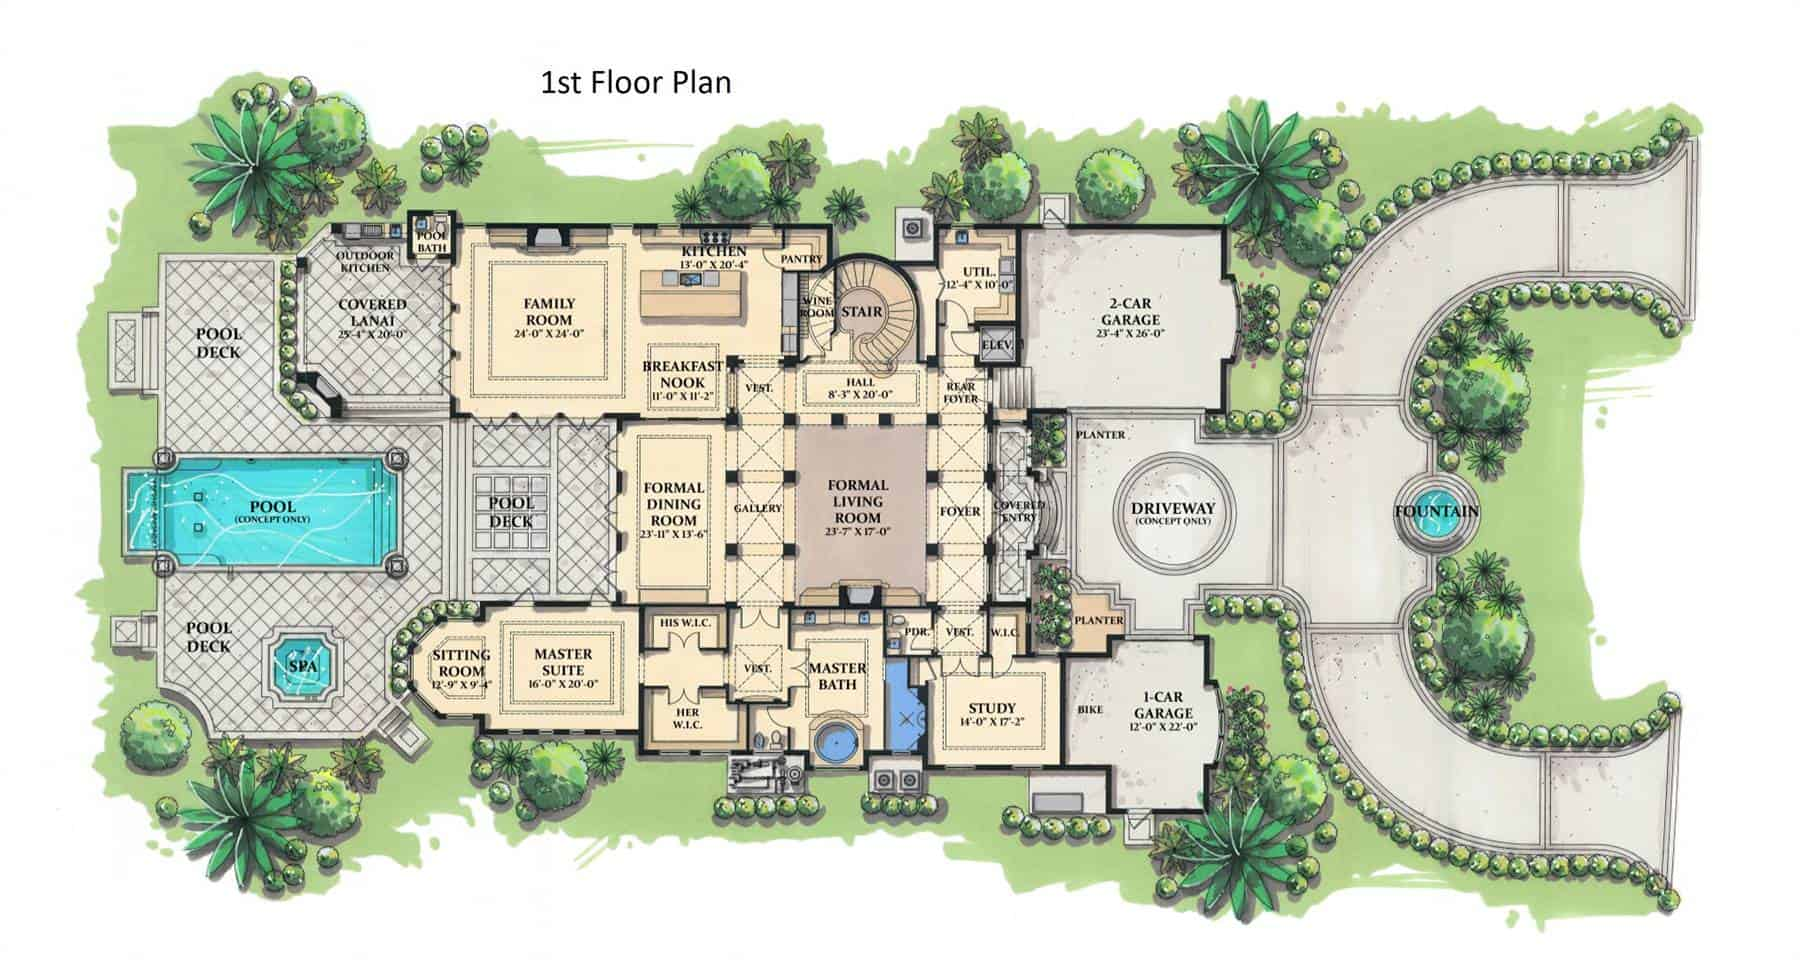 Main level floor plan of a 5-bedroom two-story grand royale Tuscan style home with a large living room, formal dining room, kitchen with breakfast nook, primary suite with a sitting room and large outdoor spaces including an outdoor kitchen, covered lanai, and pool deck.